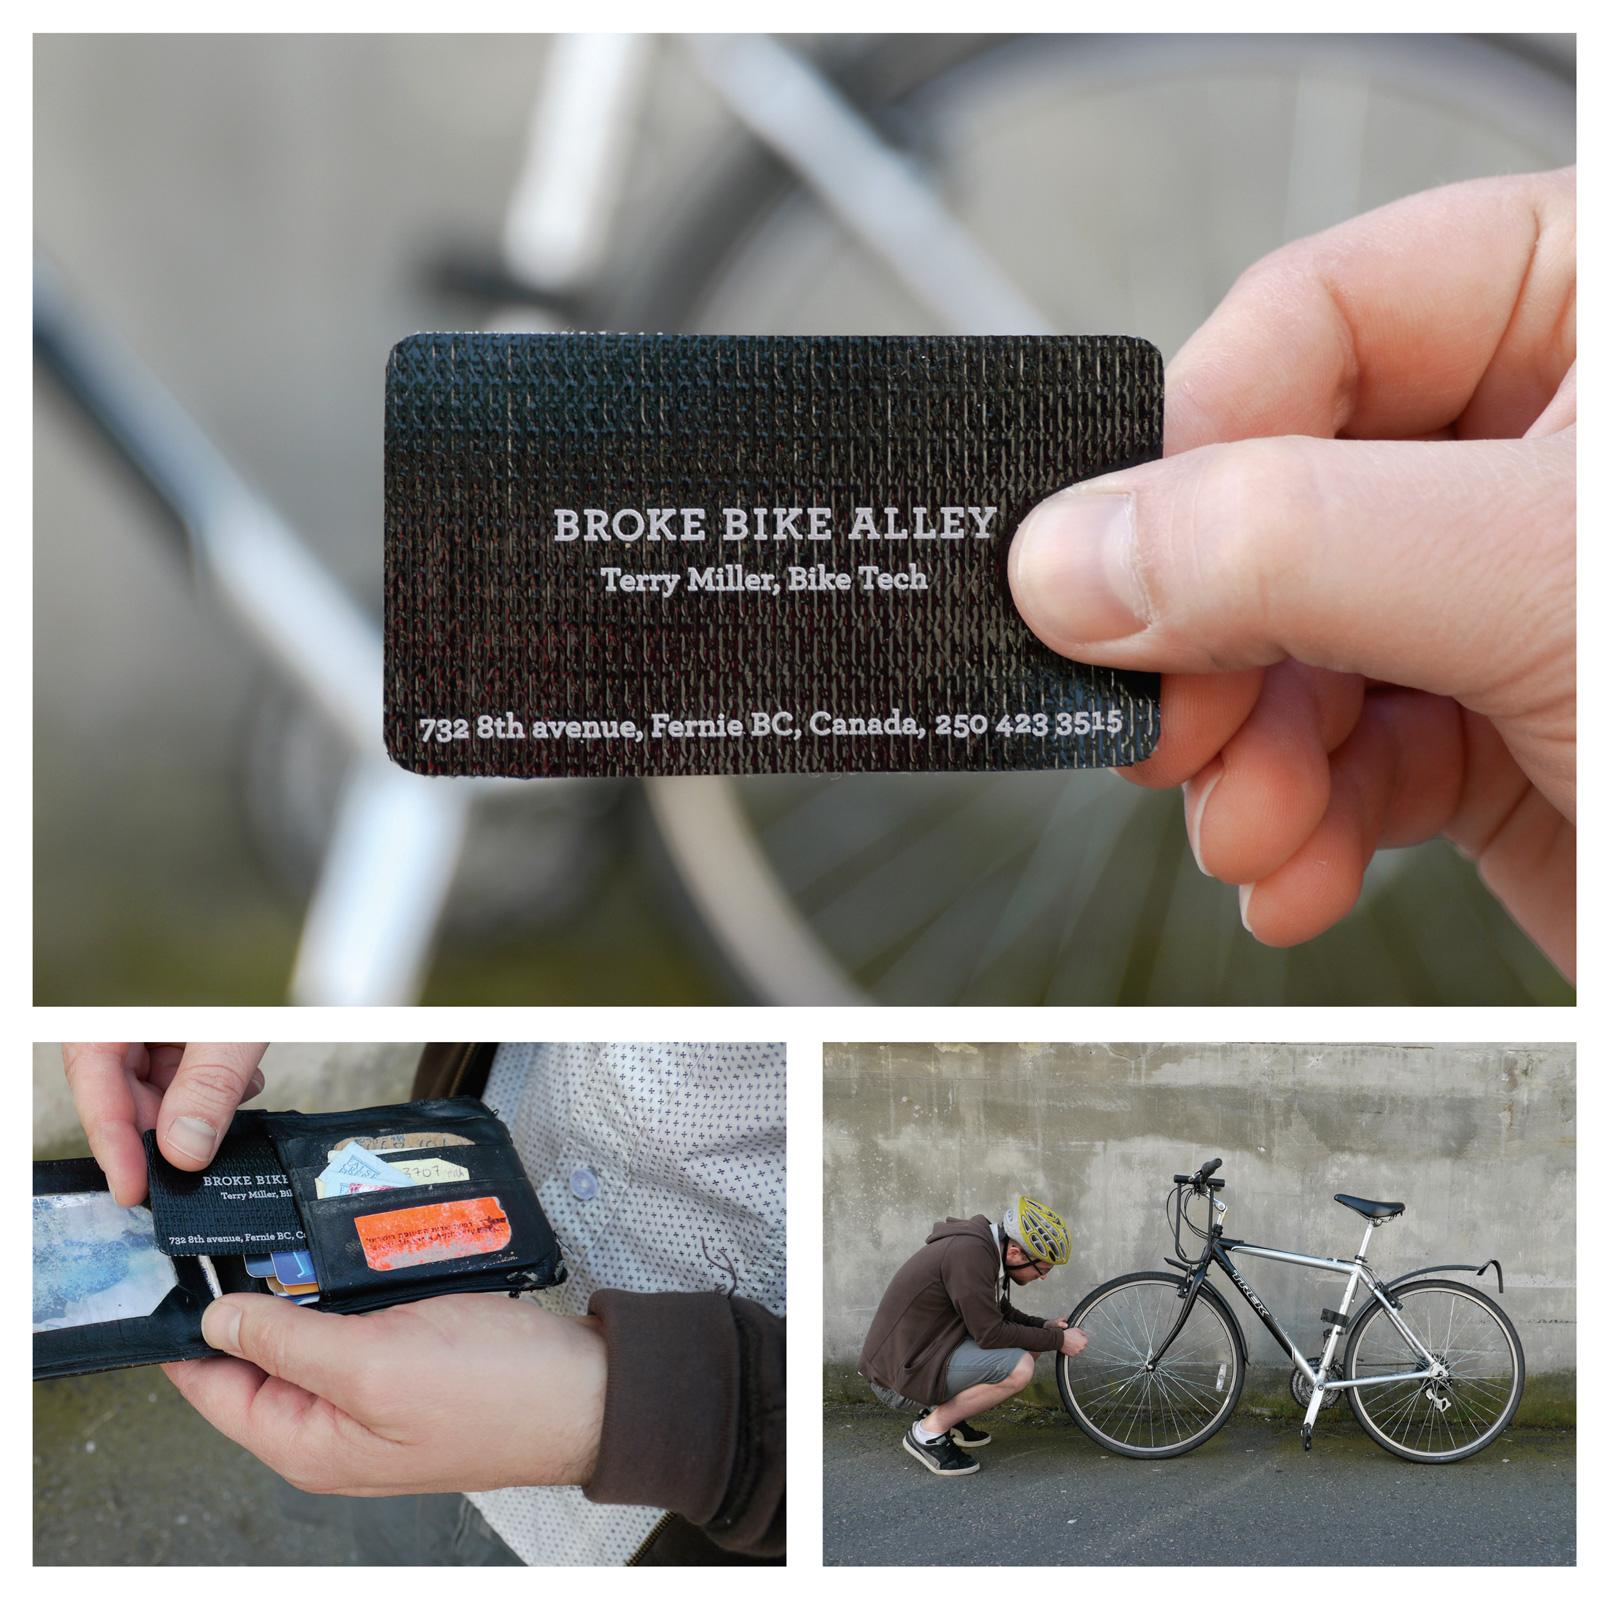 Broke Bike Alley Direct Ad -  Tire patch business card